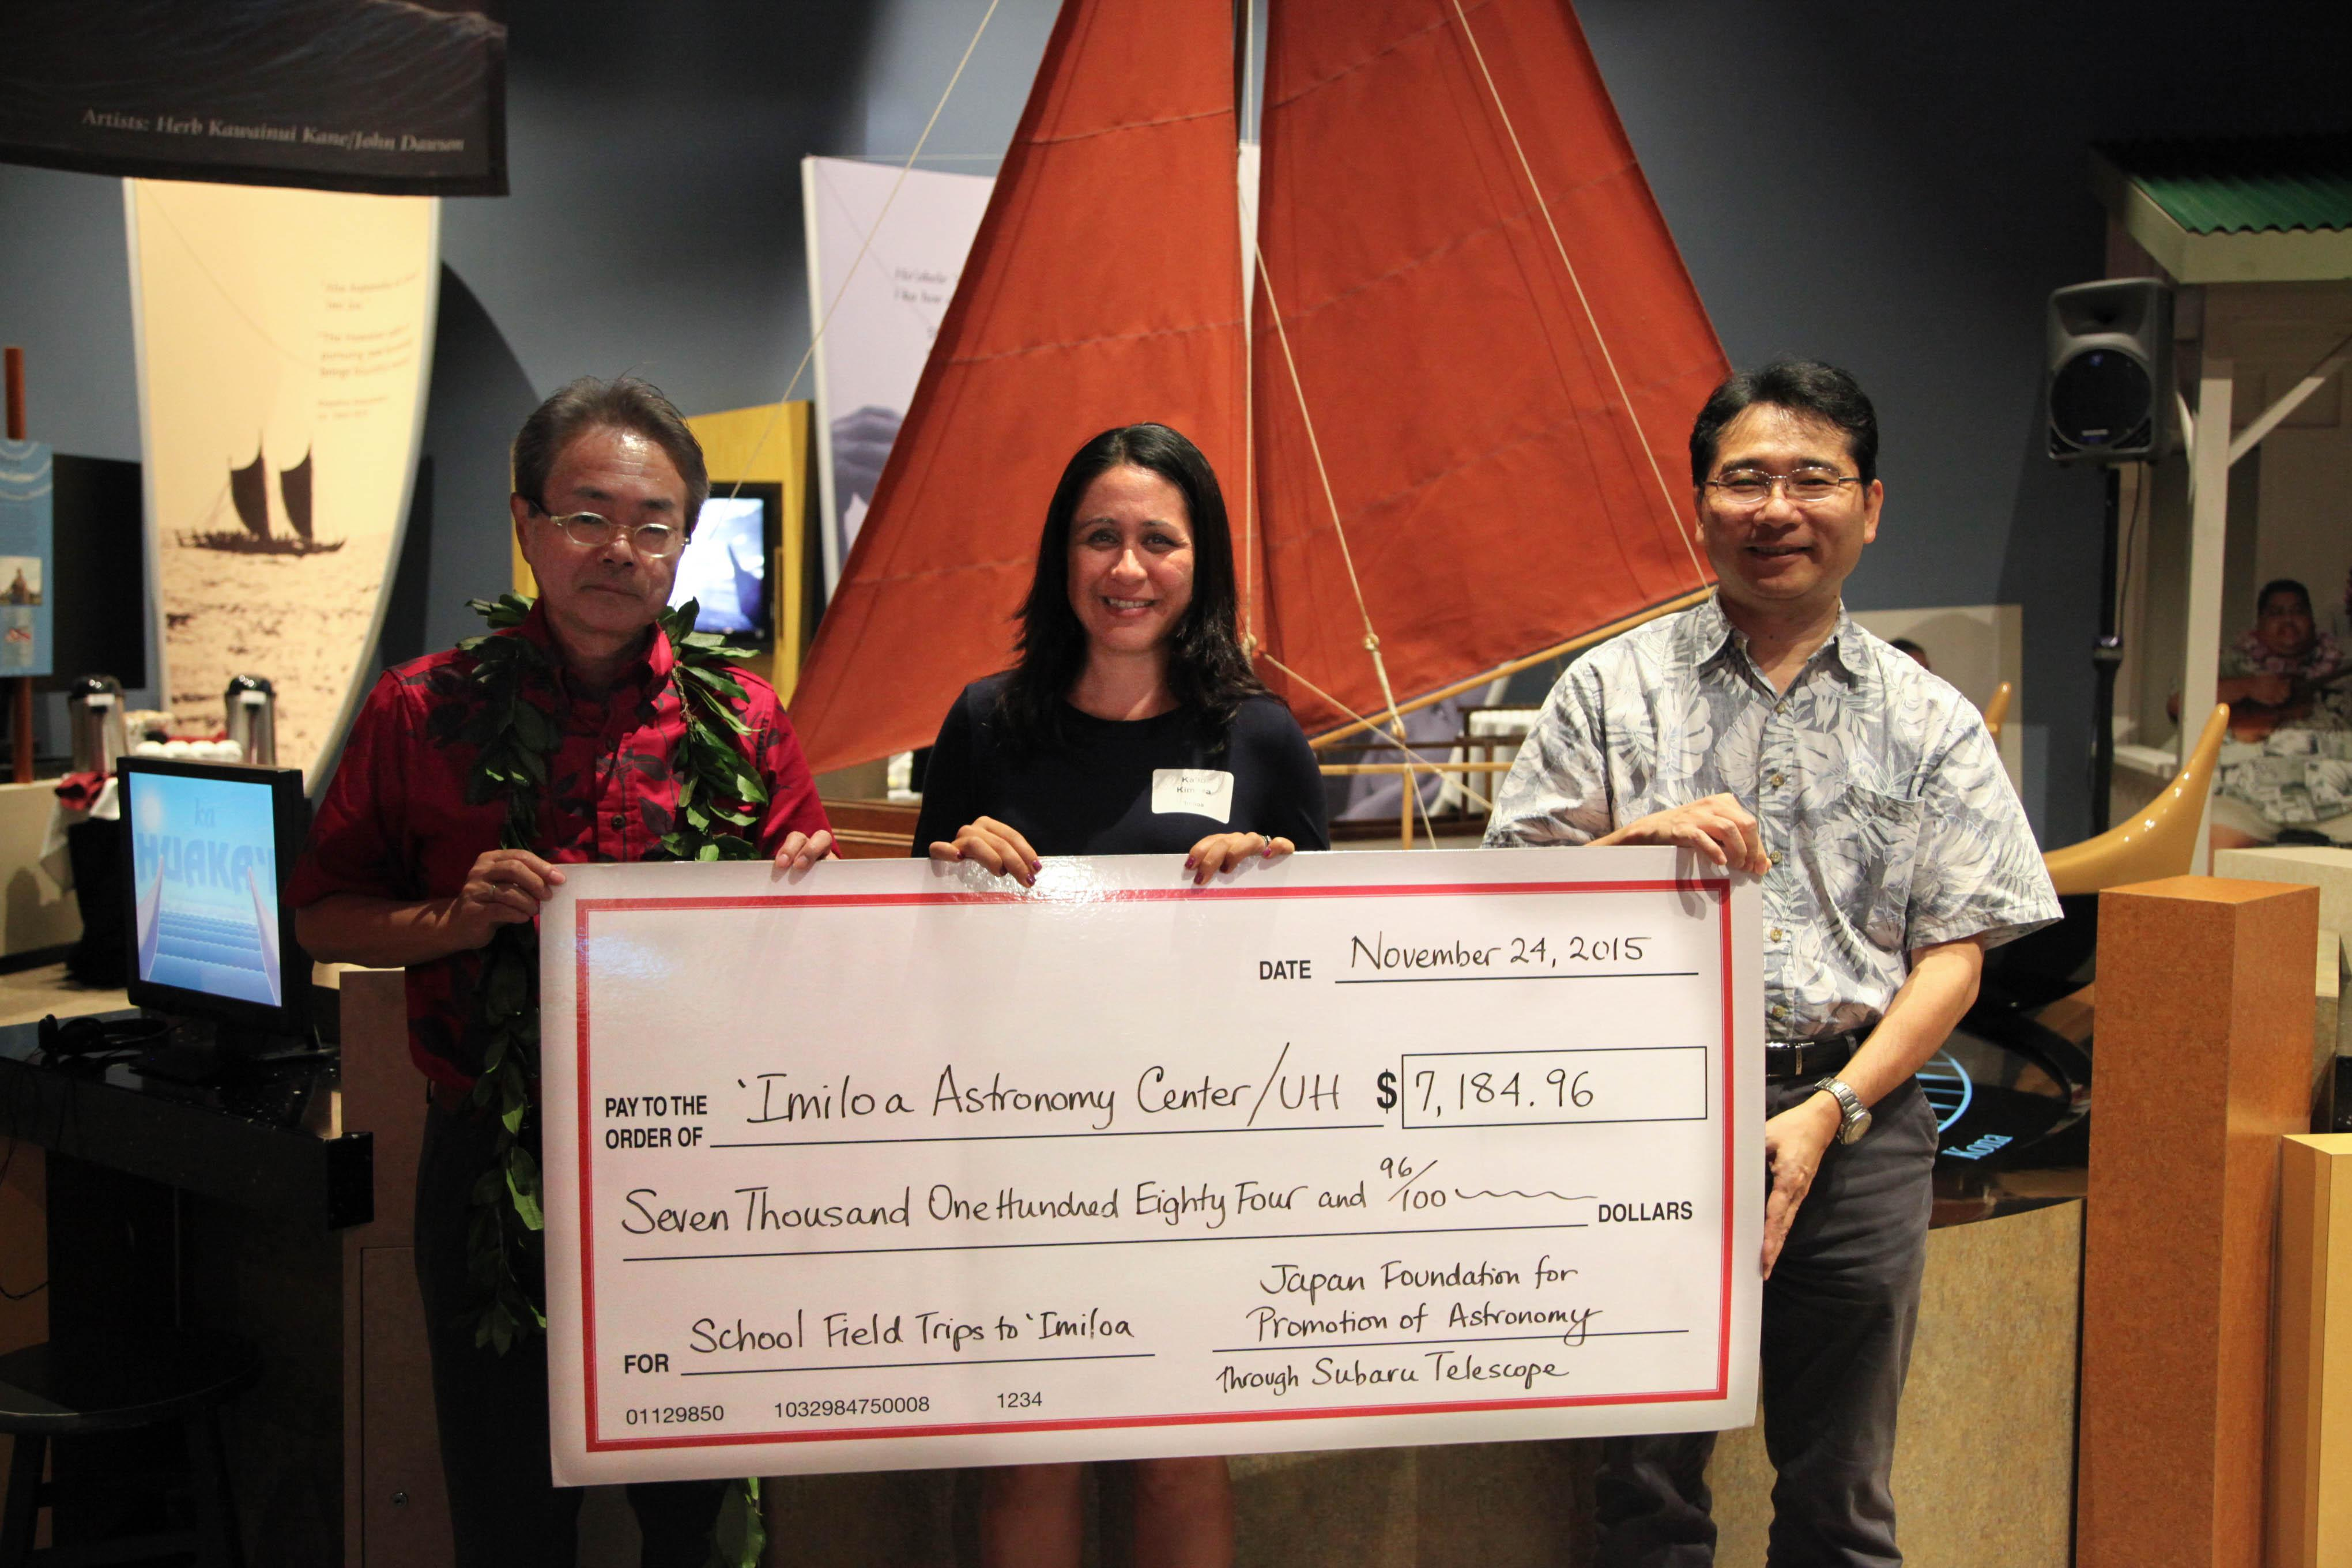 Sharing Stories of the Stars: A Grant to Bring Children to Visit 'Imiloa Astronomy Center Figure